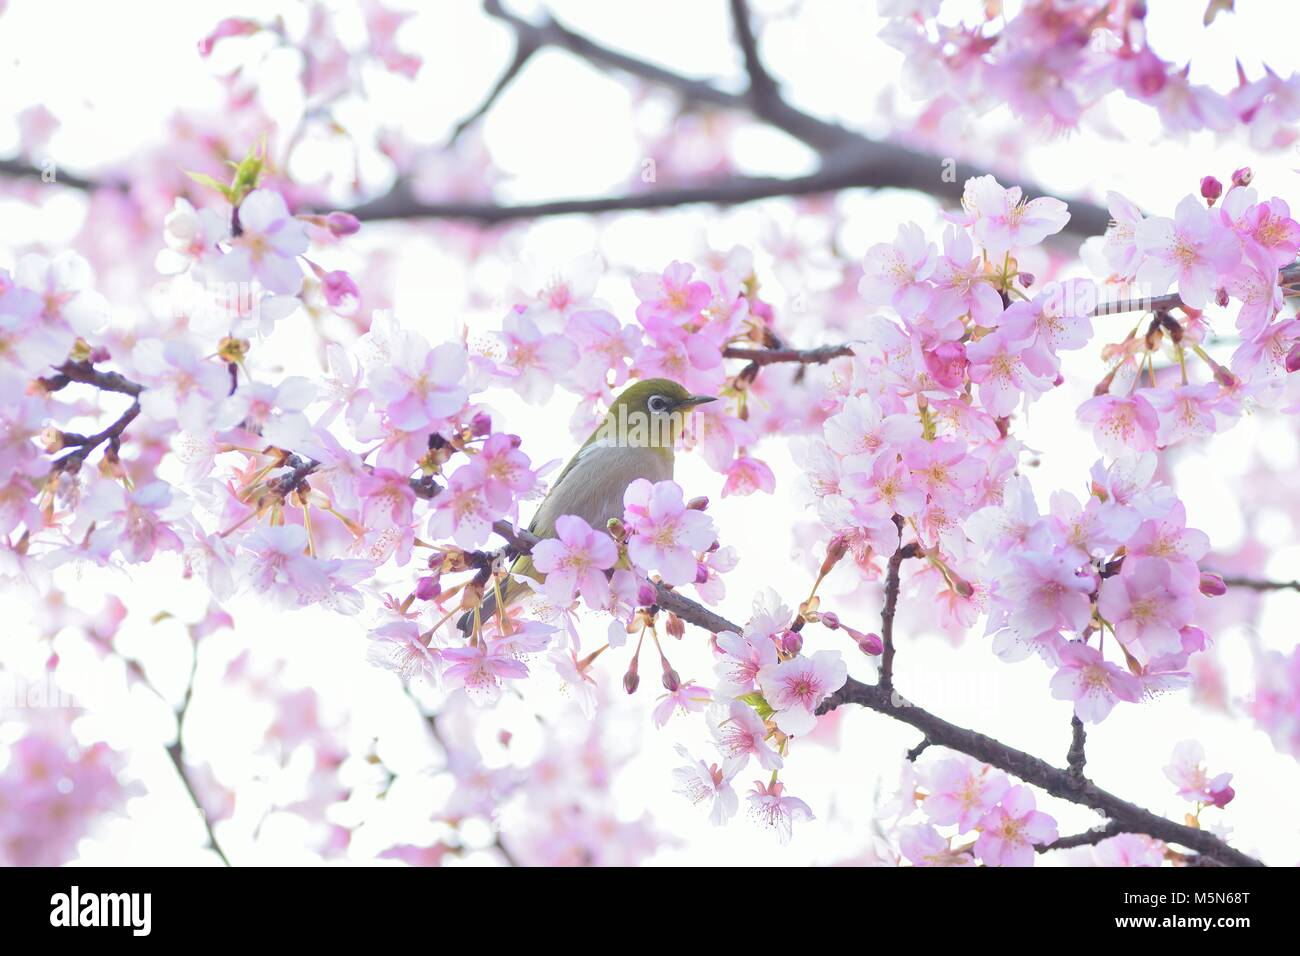 Japanese Bird Cherry Blossom Stock Photos Japanese Bird Cherry